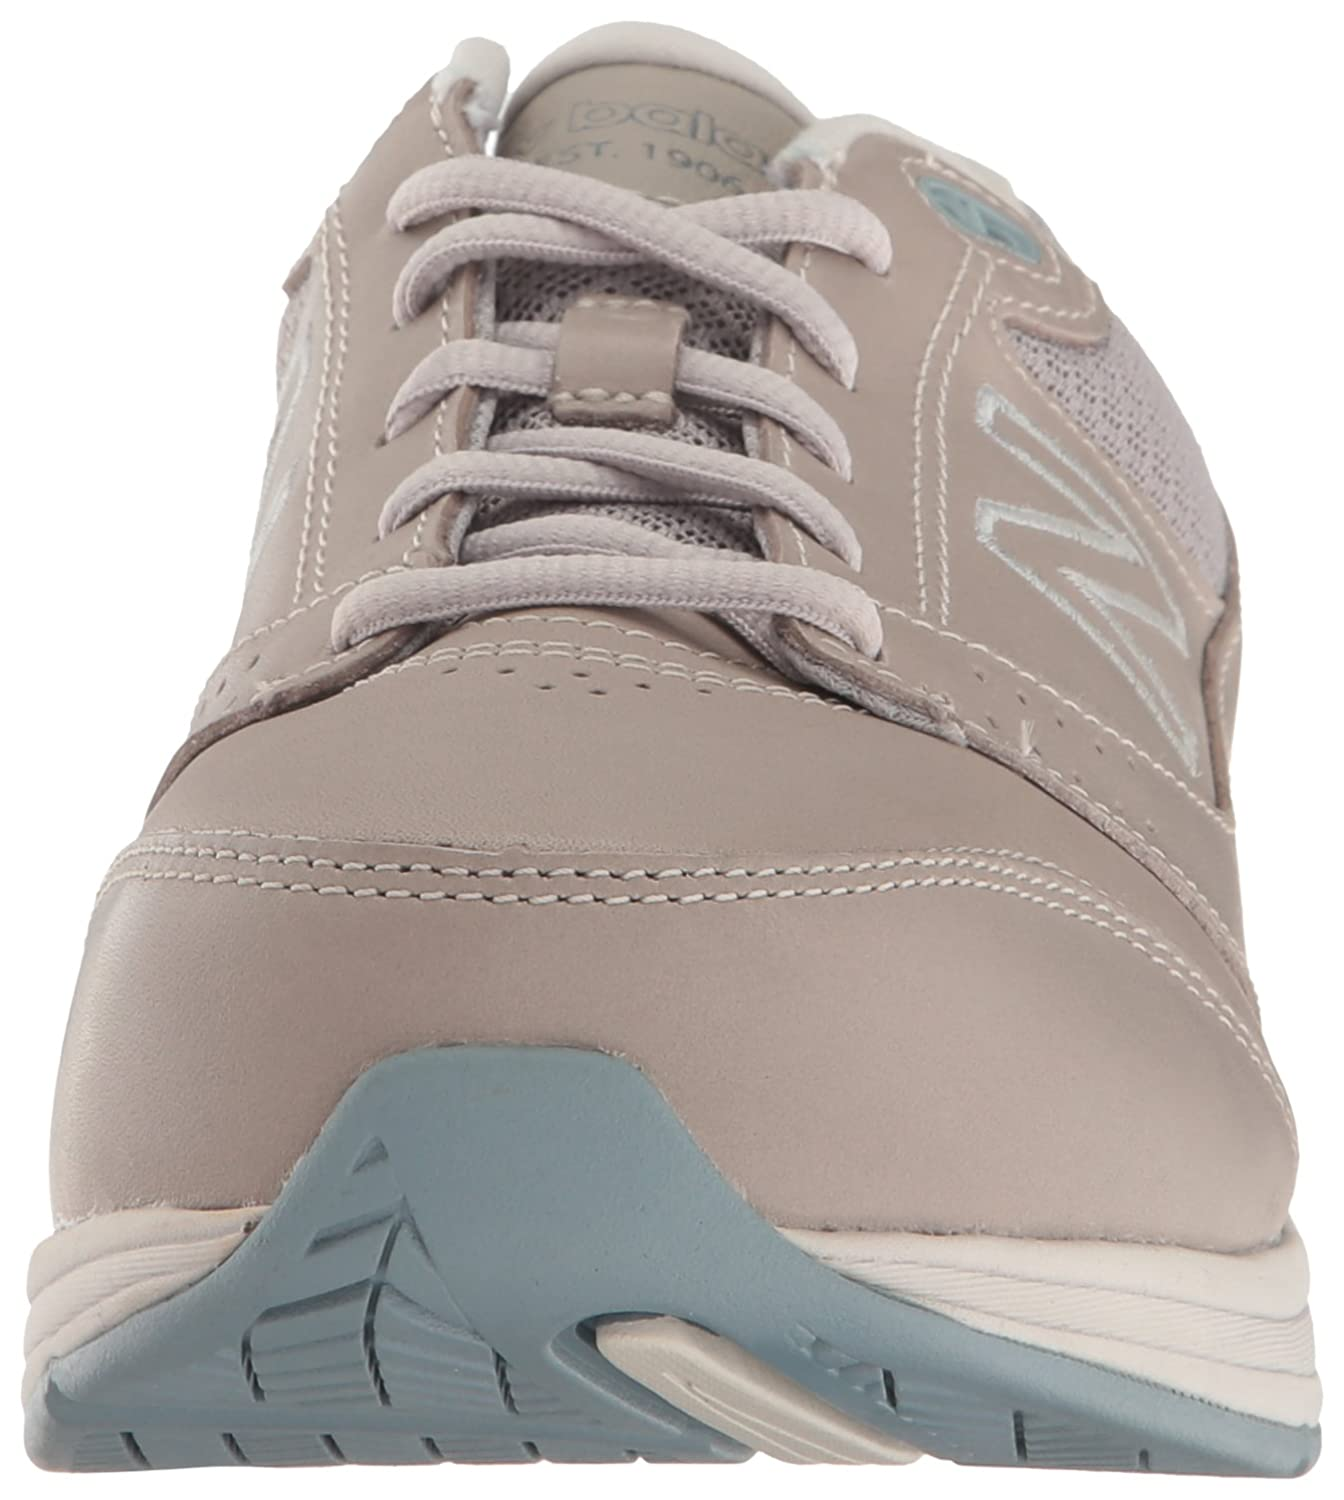 New Balance Women's Womens 928v3 Walking Shoe Walking Shoe B01N0GKFRE 8 2A US|Grey